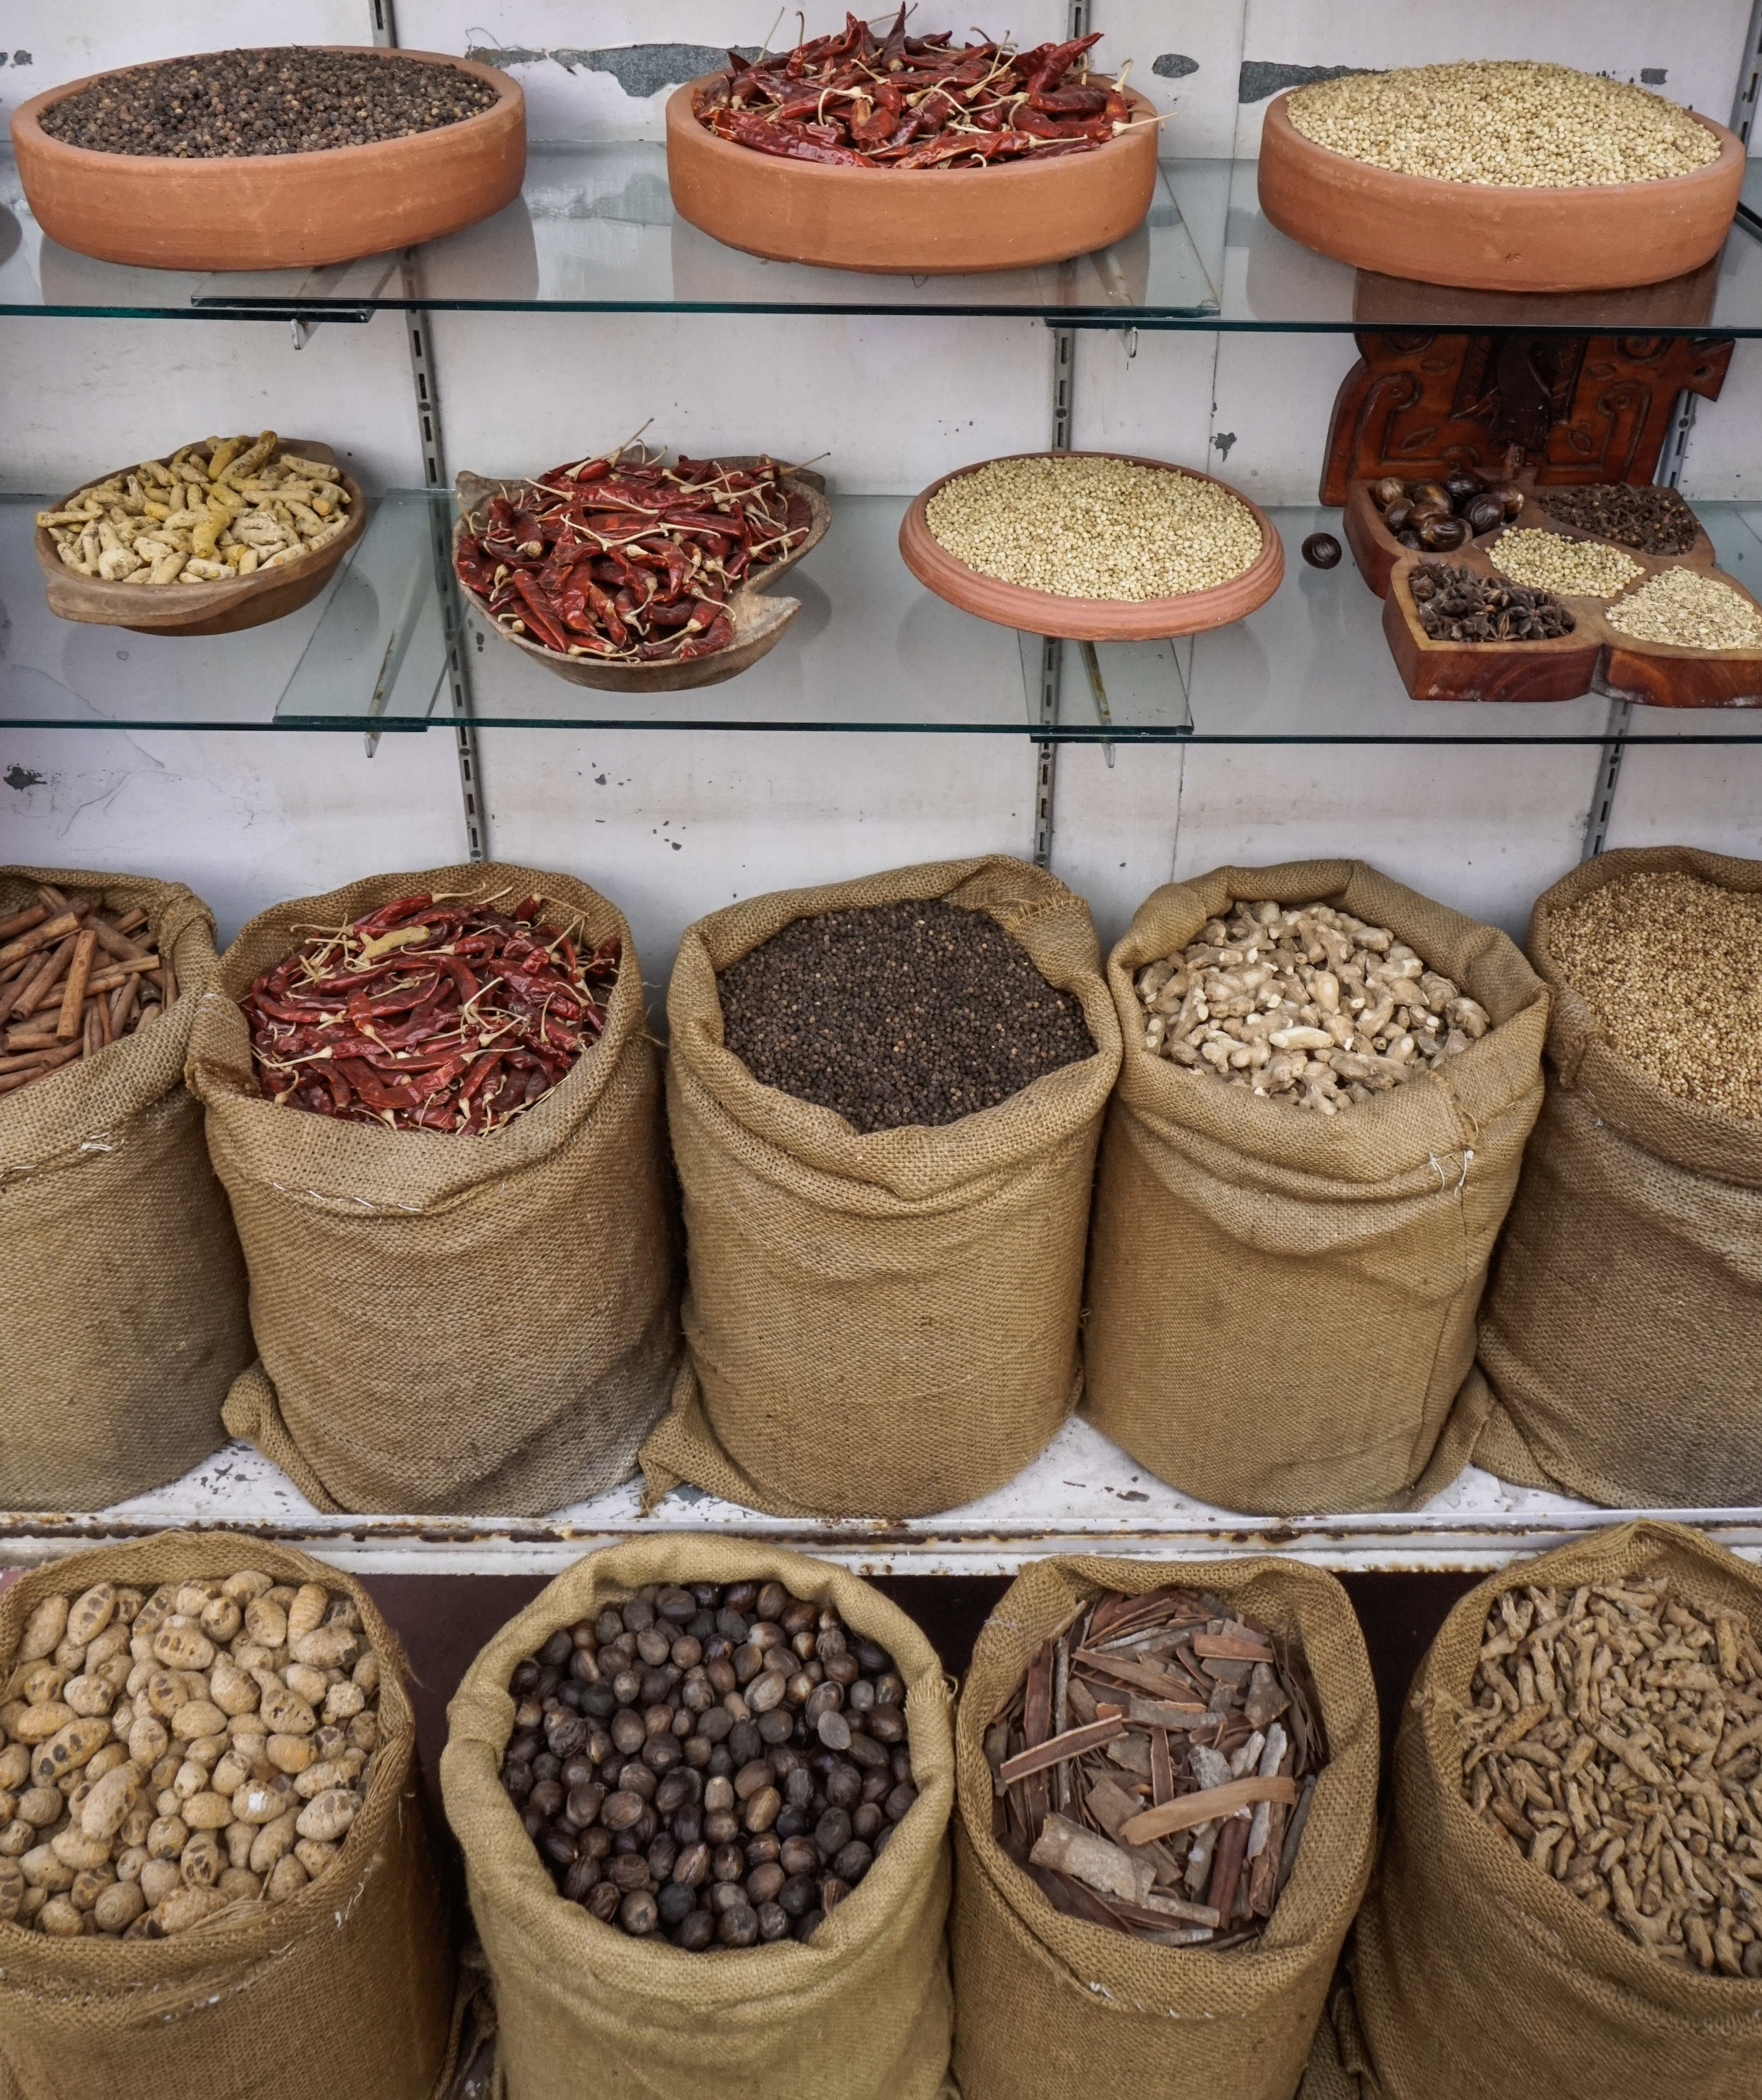 curio.trips.india.food.spices.jpg